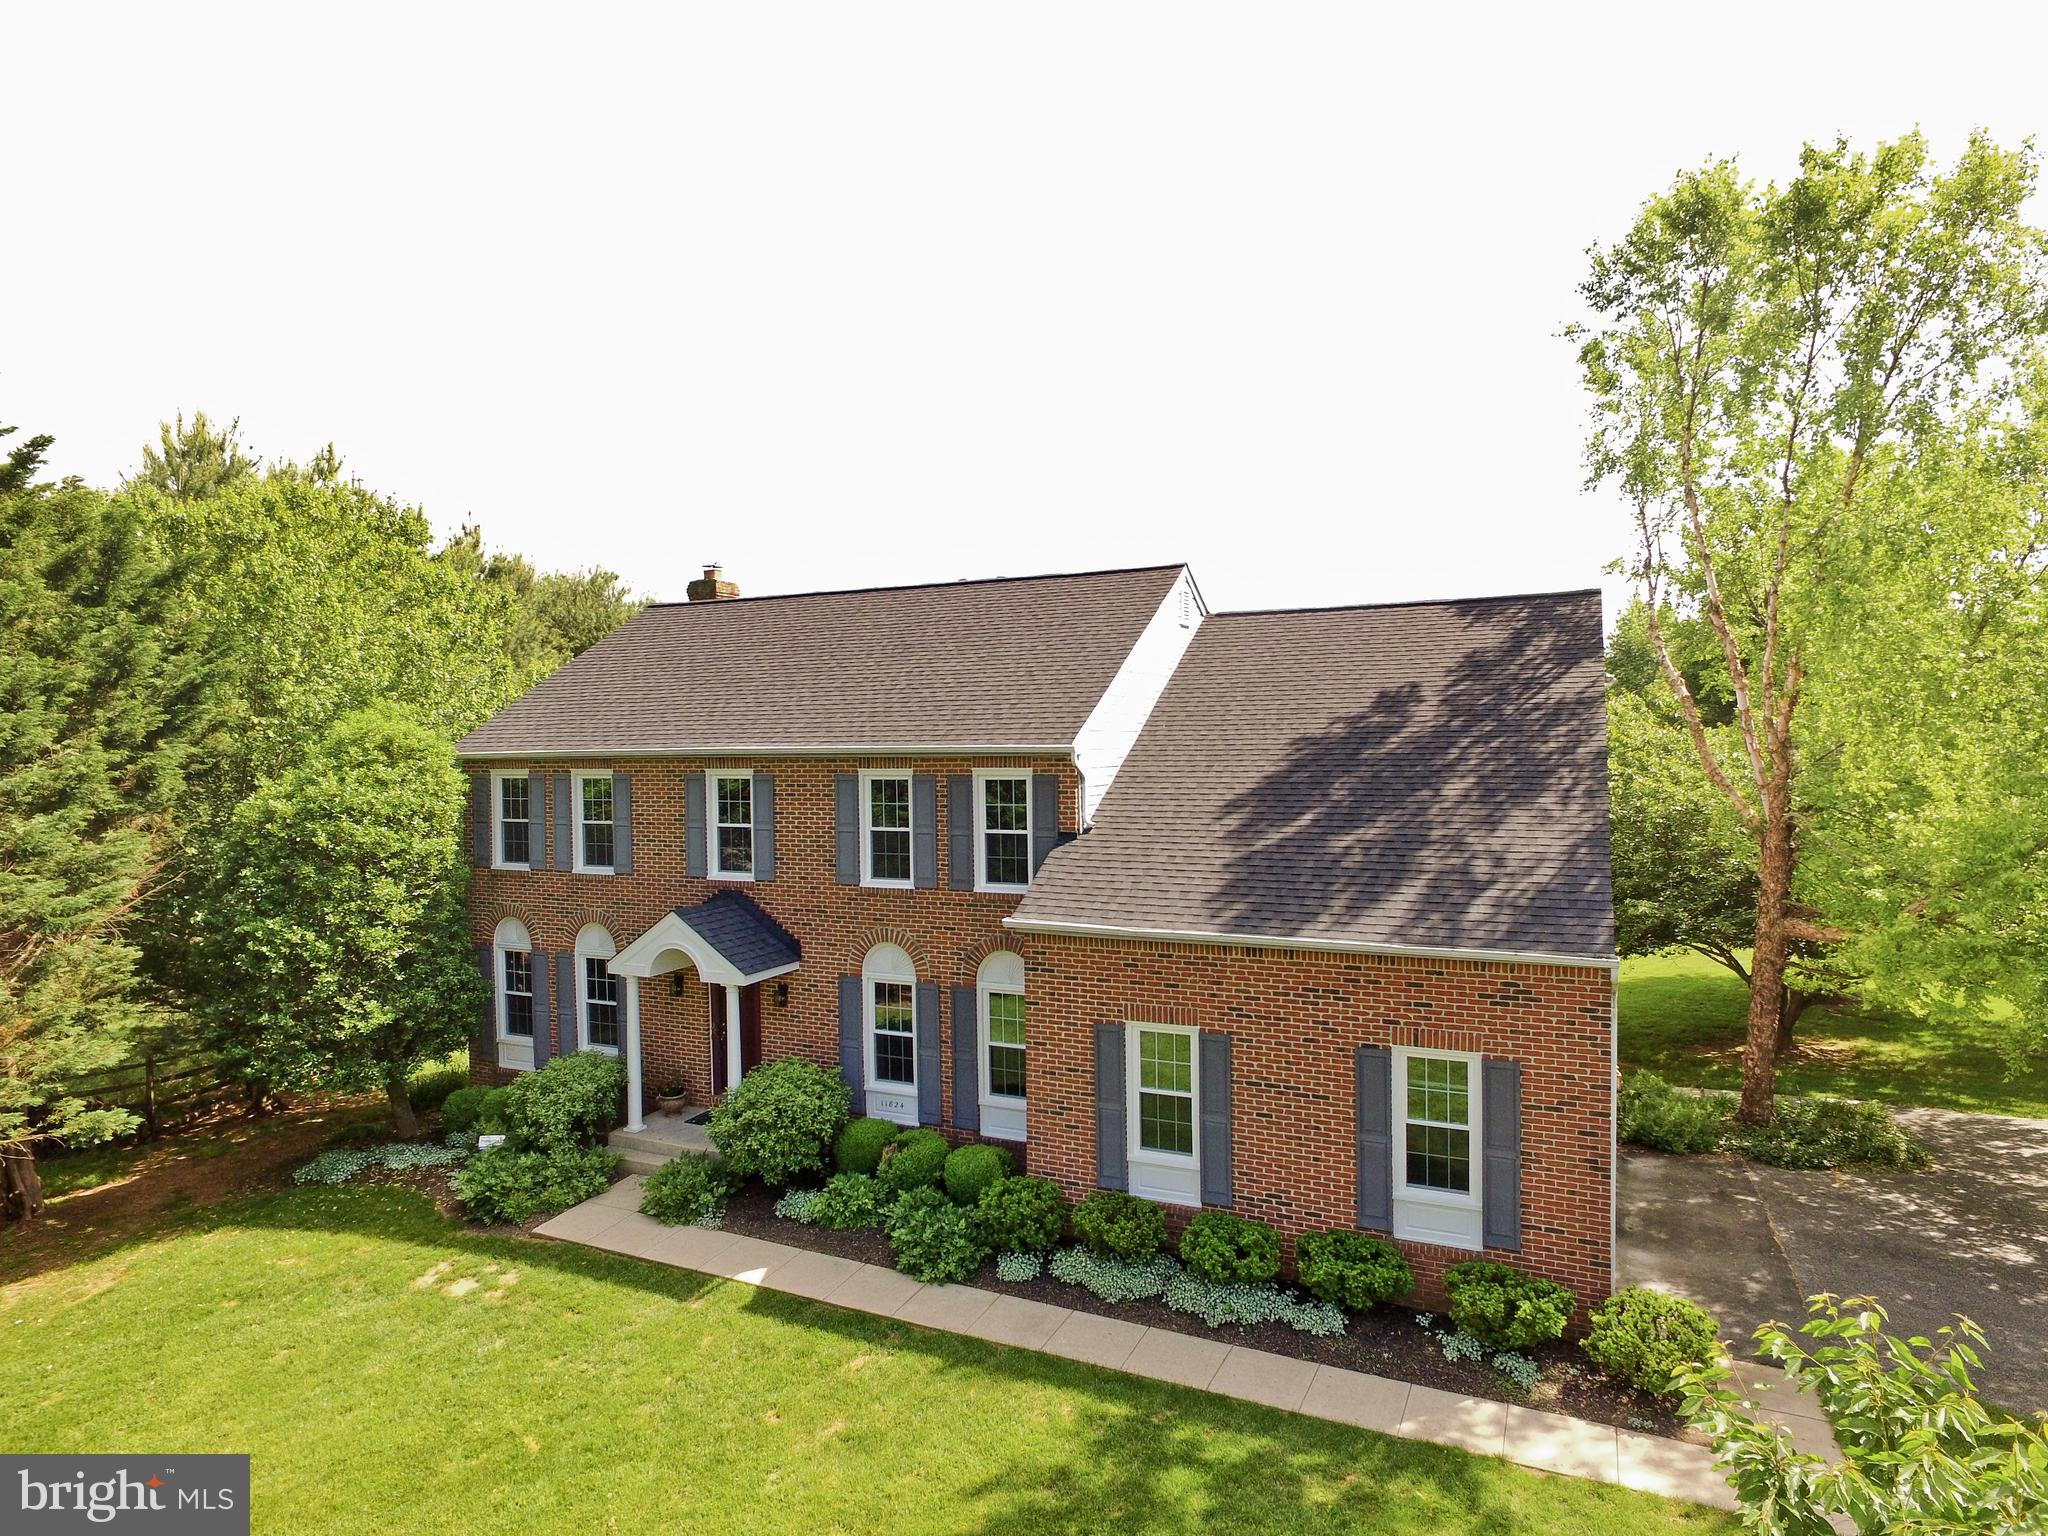 11824 MORNING STAR DRIVE, GERMANTOWN, MD 20876